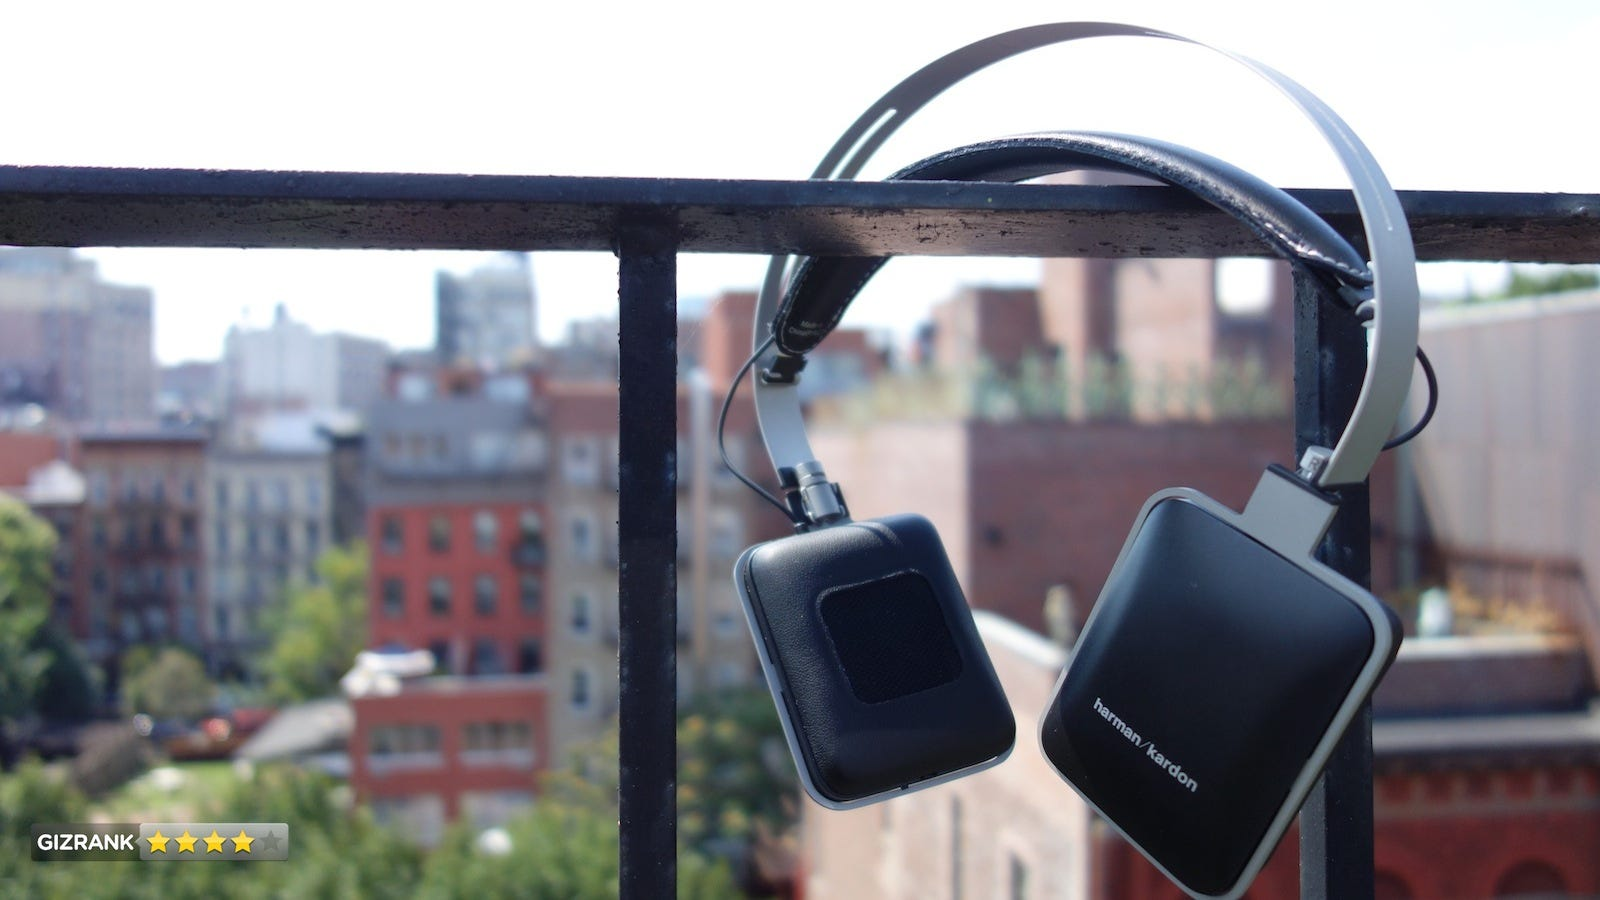 sennheiser earbuds discontinued - Harman Kardon CL Review: These Headphones Can Handle All Your Listening Needs